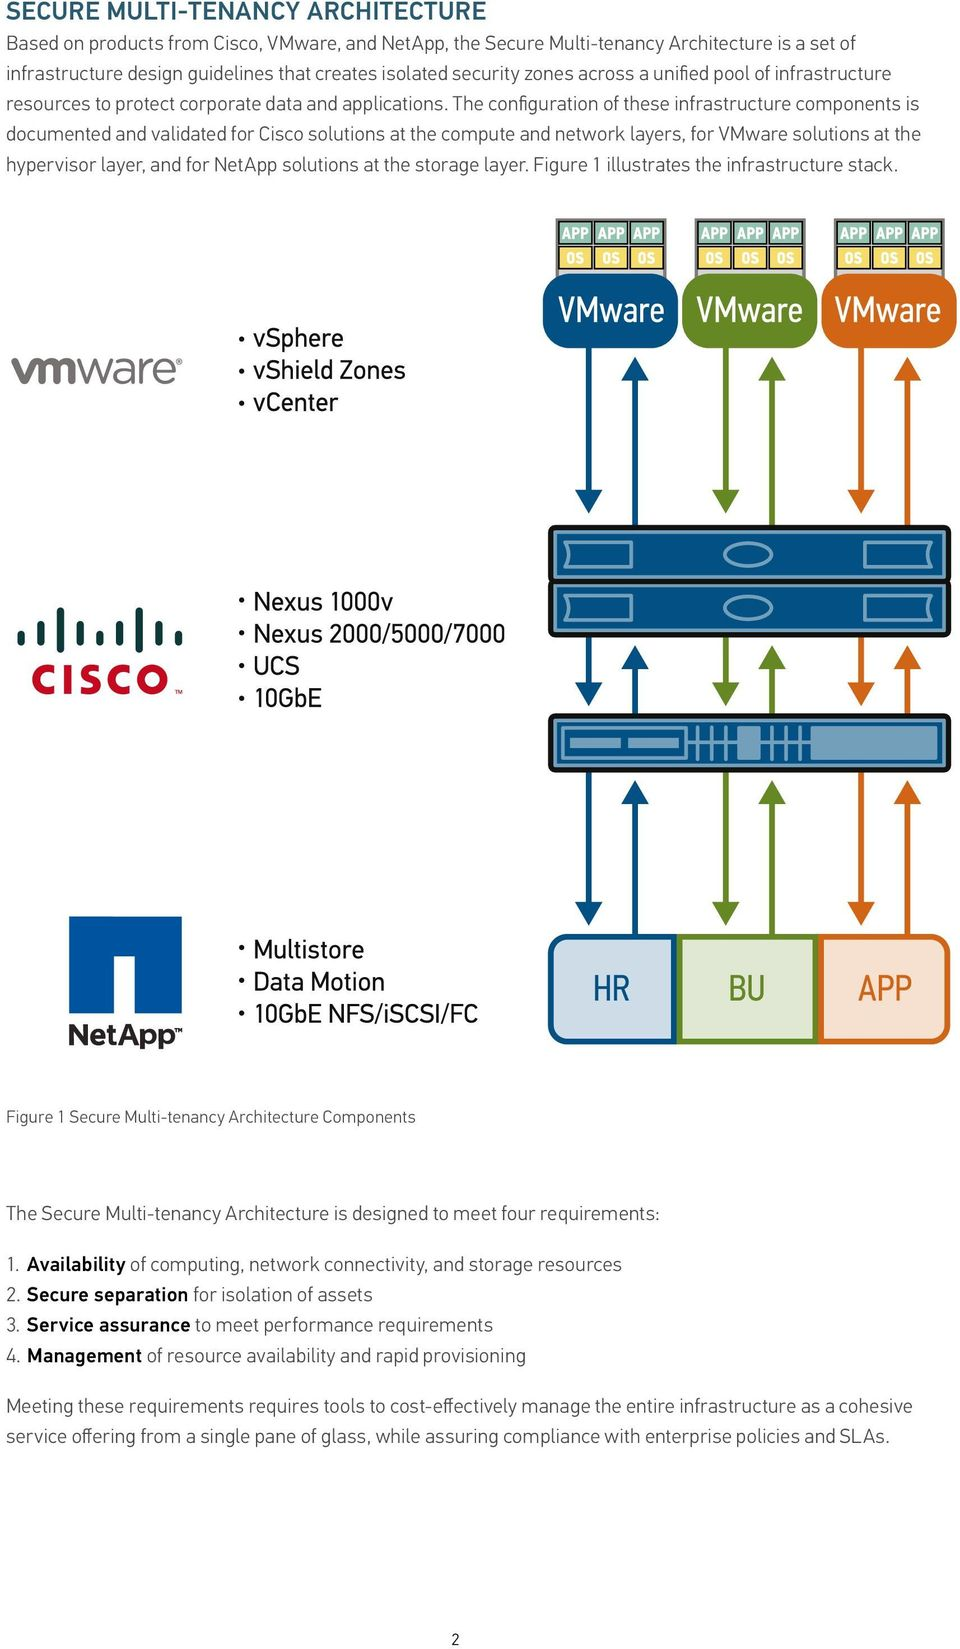 The configuration of these infrastructure components is documented and validated for Cisco solutions at the compute and network layers, for VMware solutions at the hypervisor layer, and for NetApp